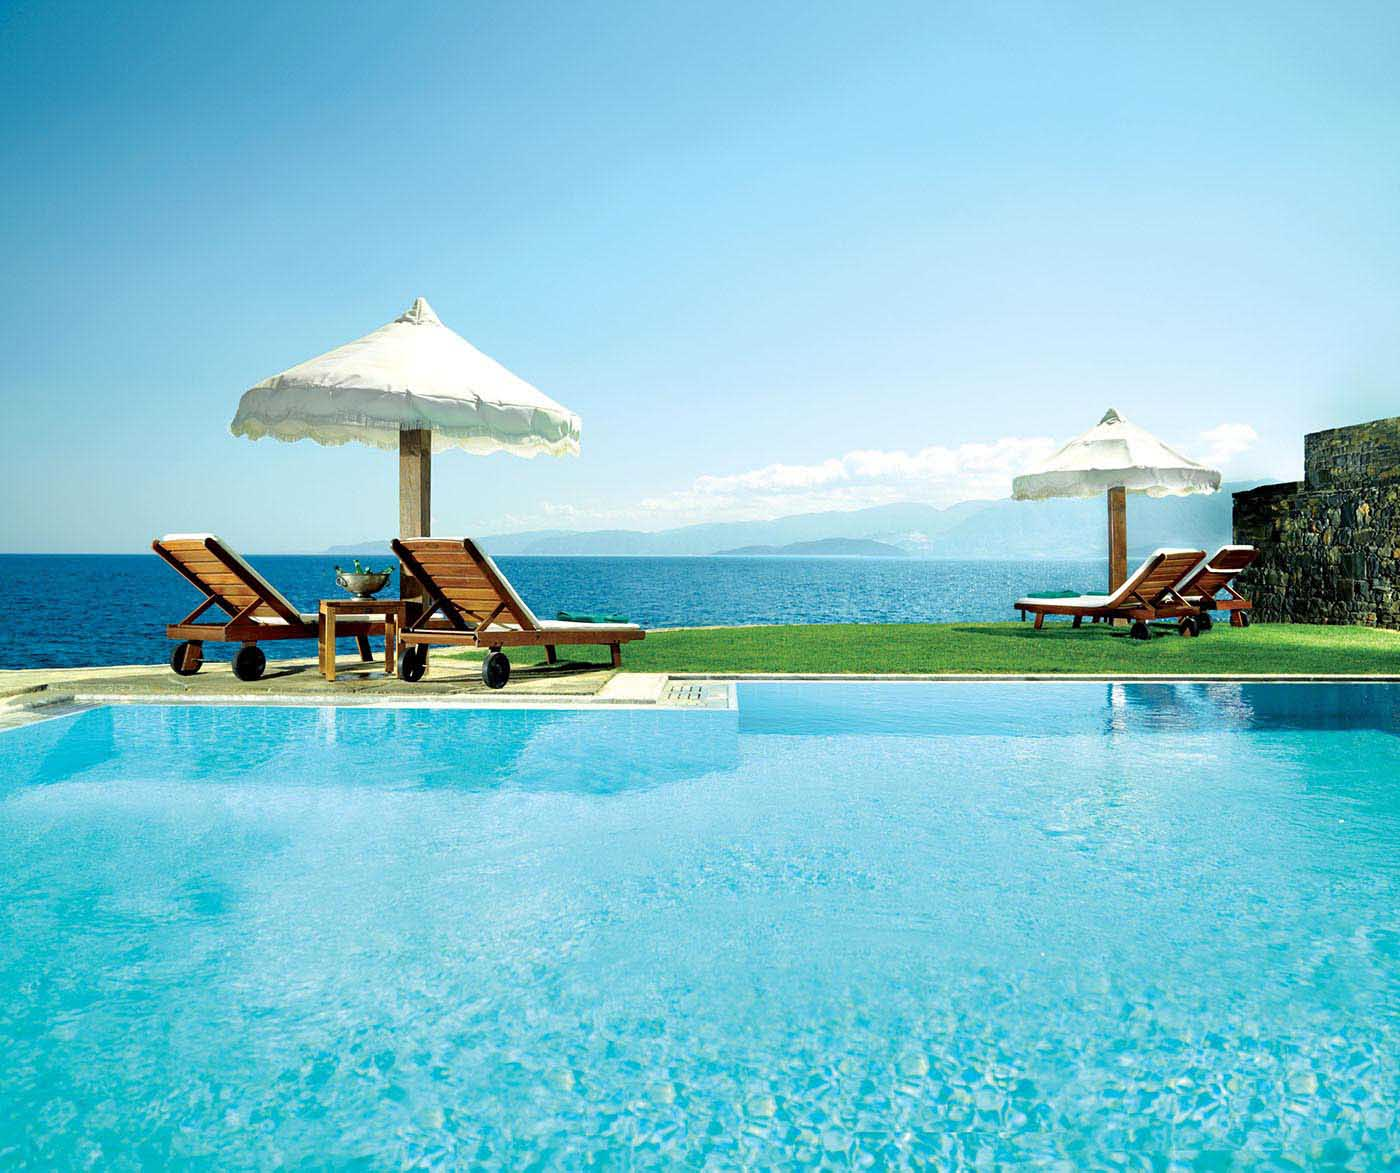 Kassandra - Afitos hotels & resorts, 50% discount for early bookings, Kassandra - Afitos, Halkidiki (Chalkidiki), Macedonia, Greece